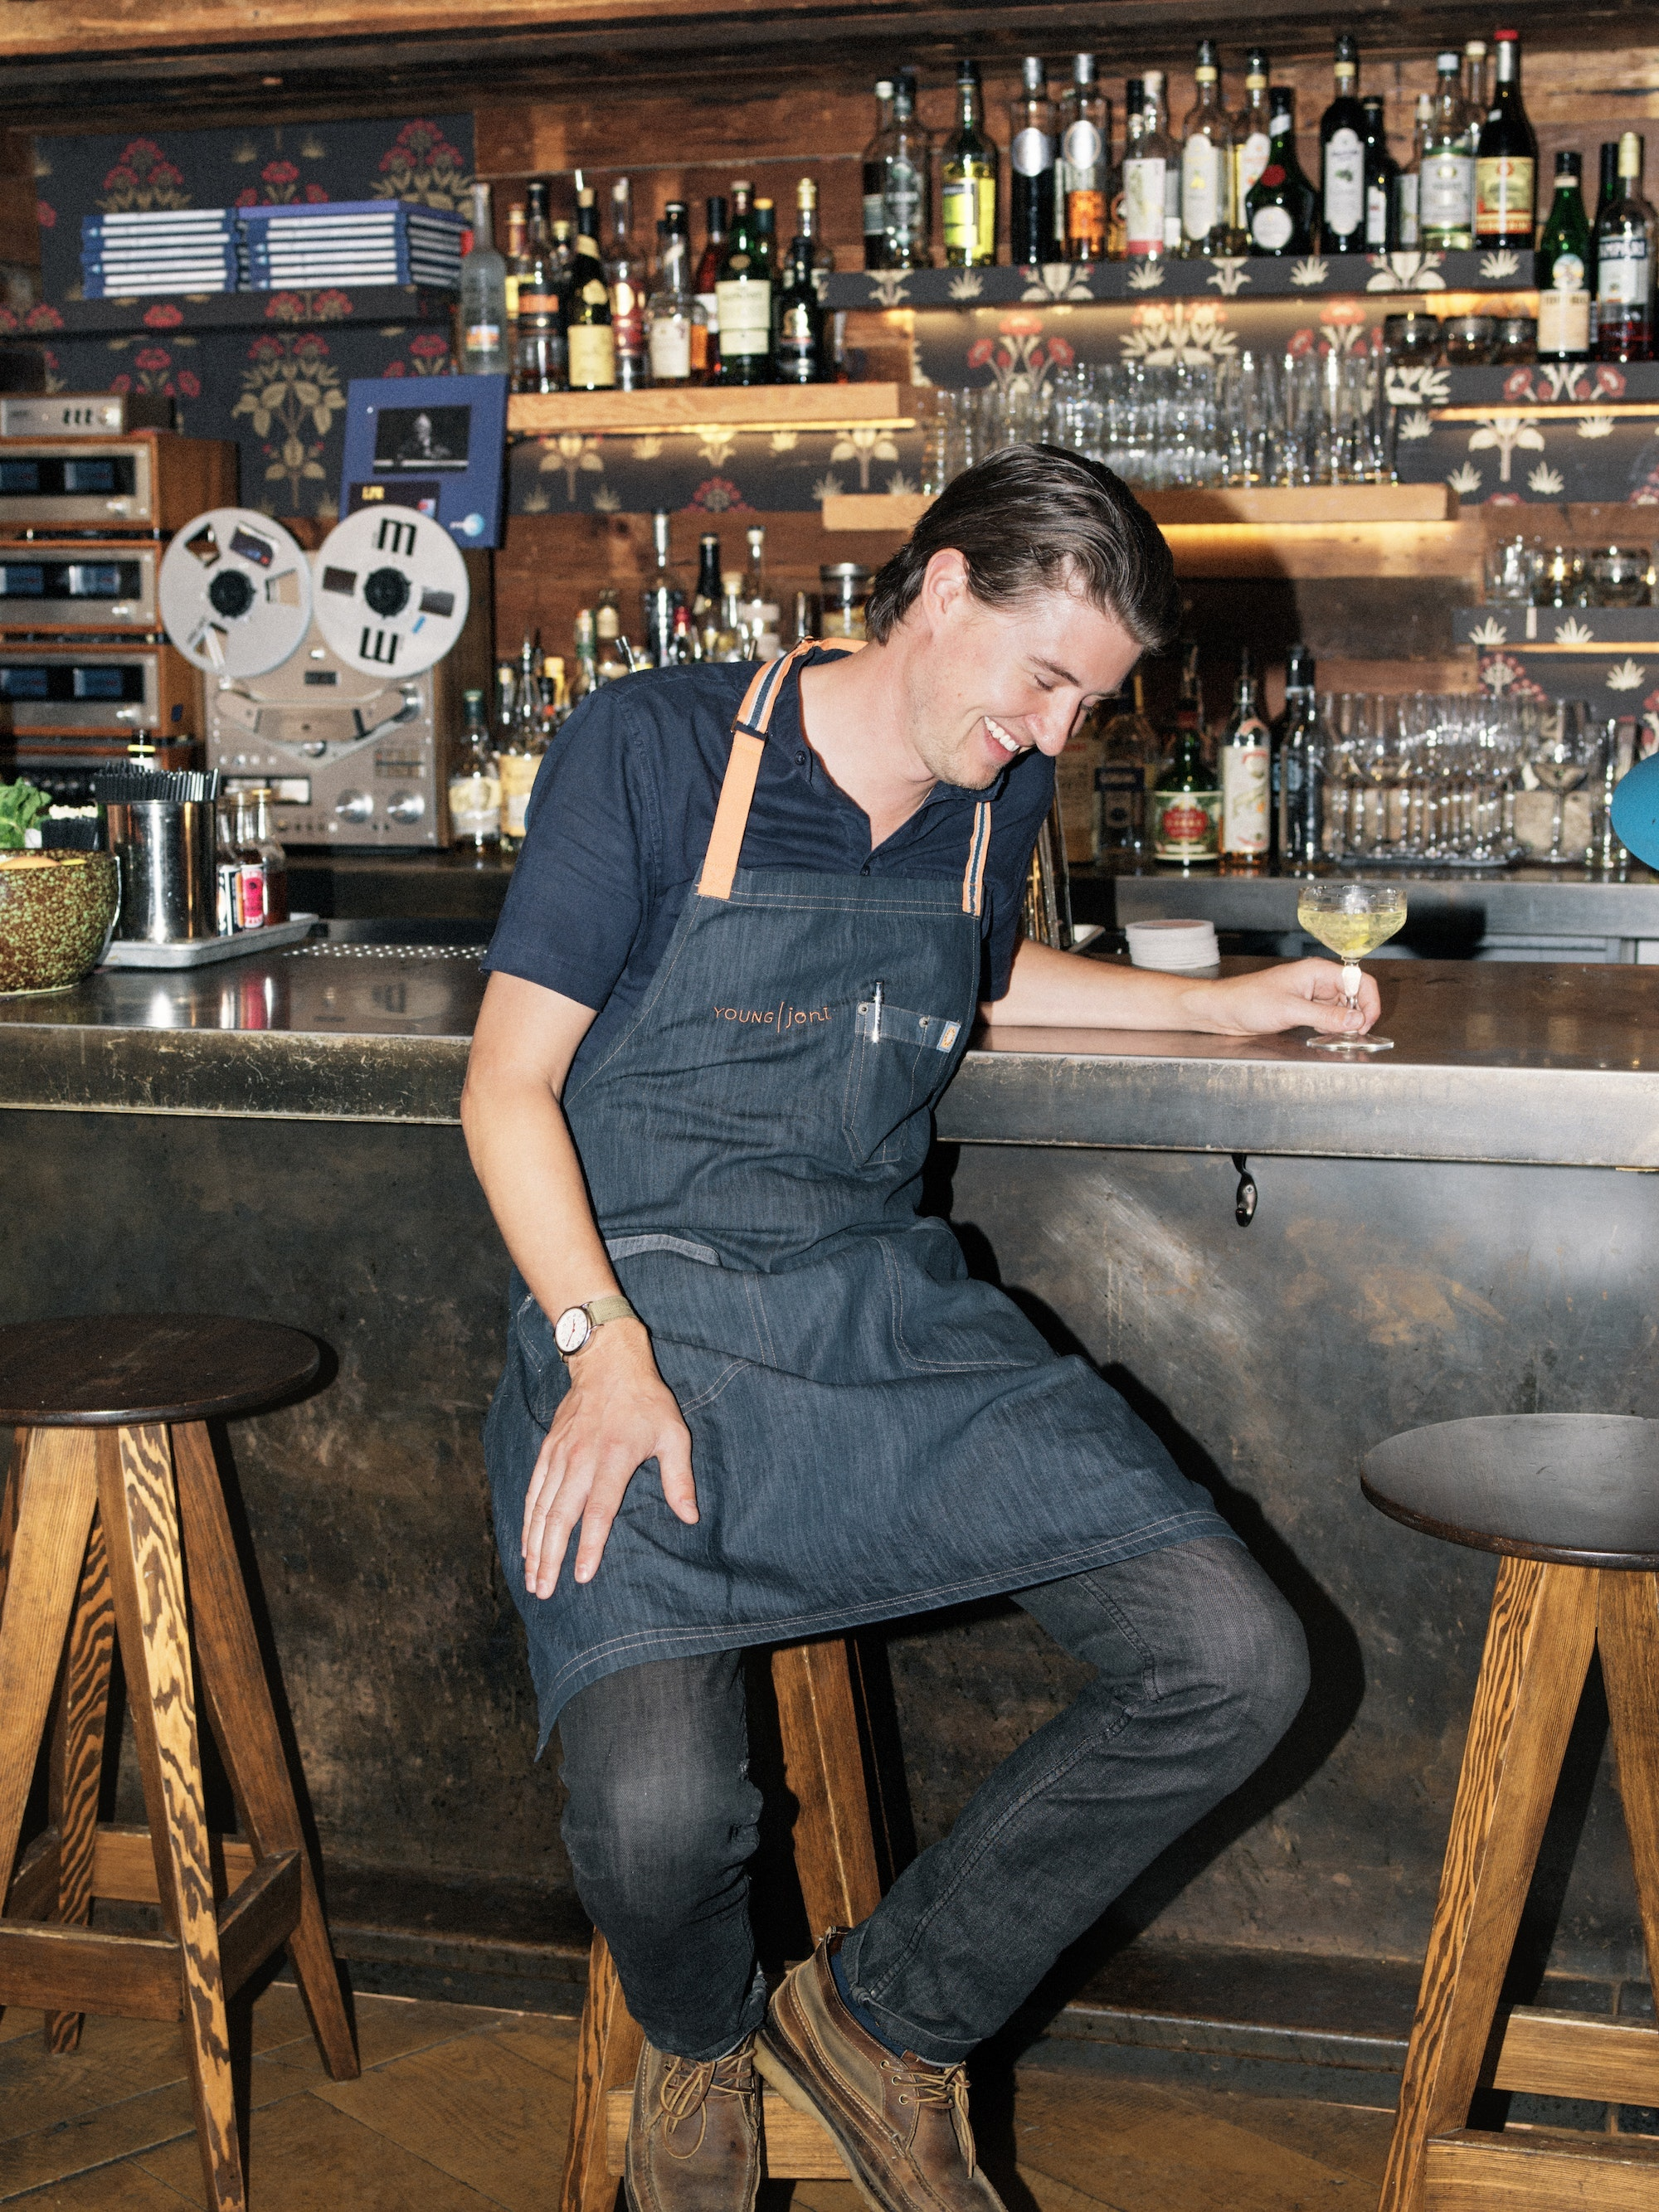 Three times a year, bar director Adam Gorski chooses a new theme and overhauls the entire cocktail menu at Young Joni's Back Bar.